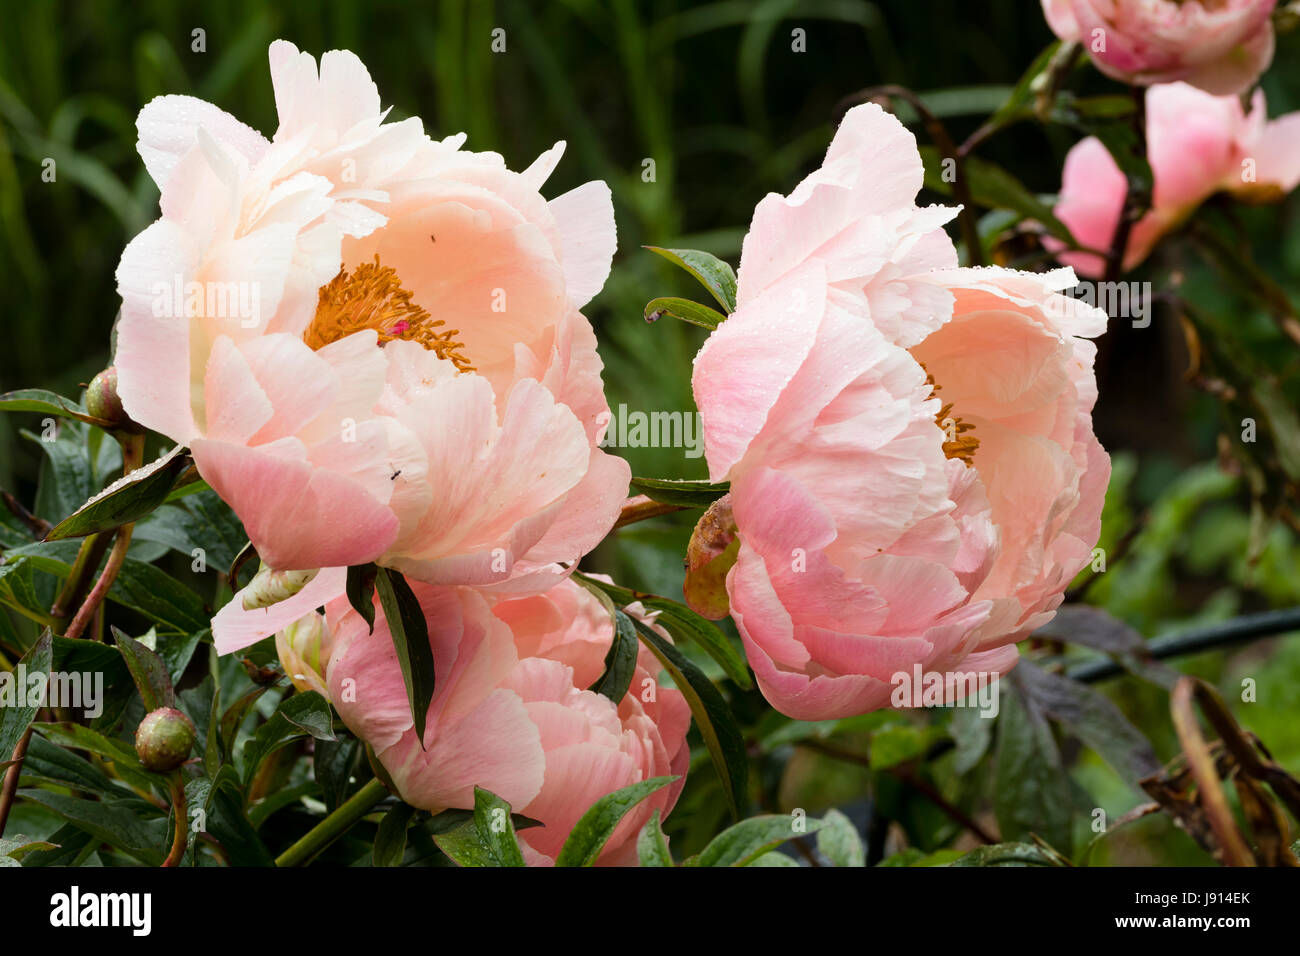 Two flowers of the semi double blooming peony, Paeonia 'Coral Charm' - Stock Image